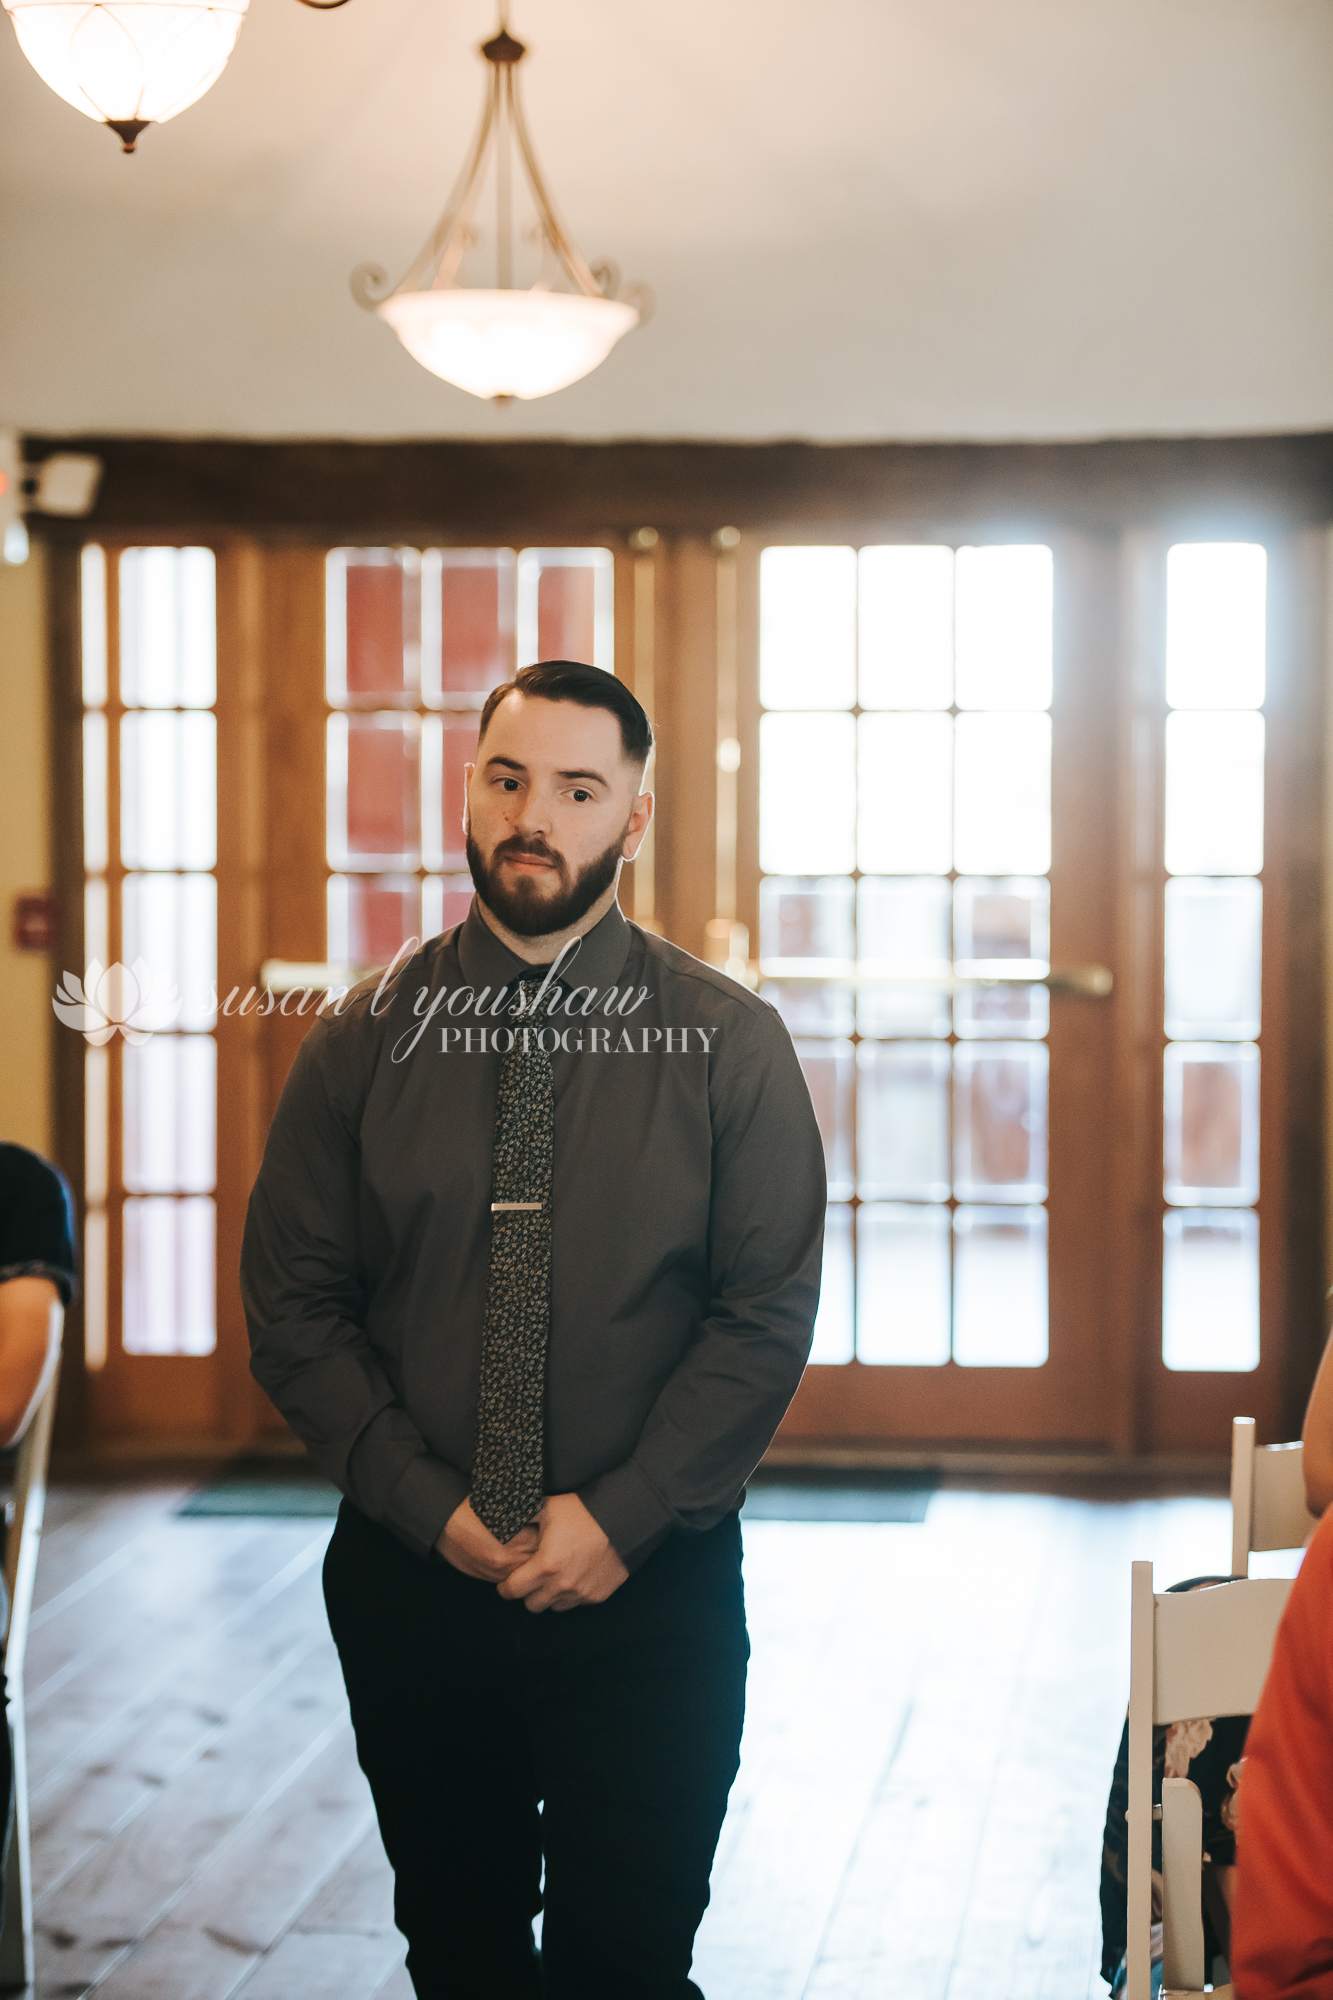 Chynna and John Wedding 05-18-2019 SLY Photography-91.jpg